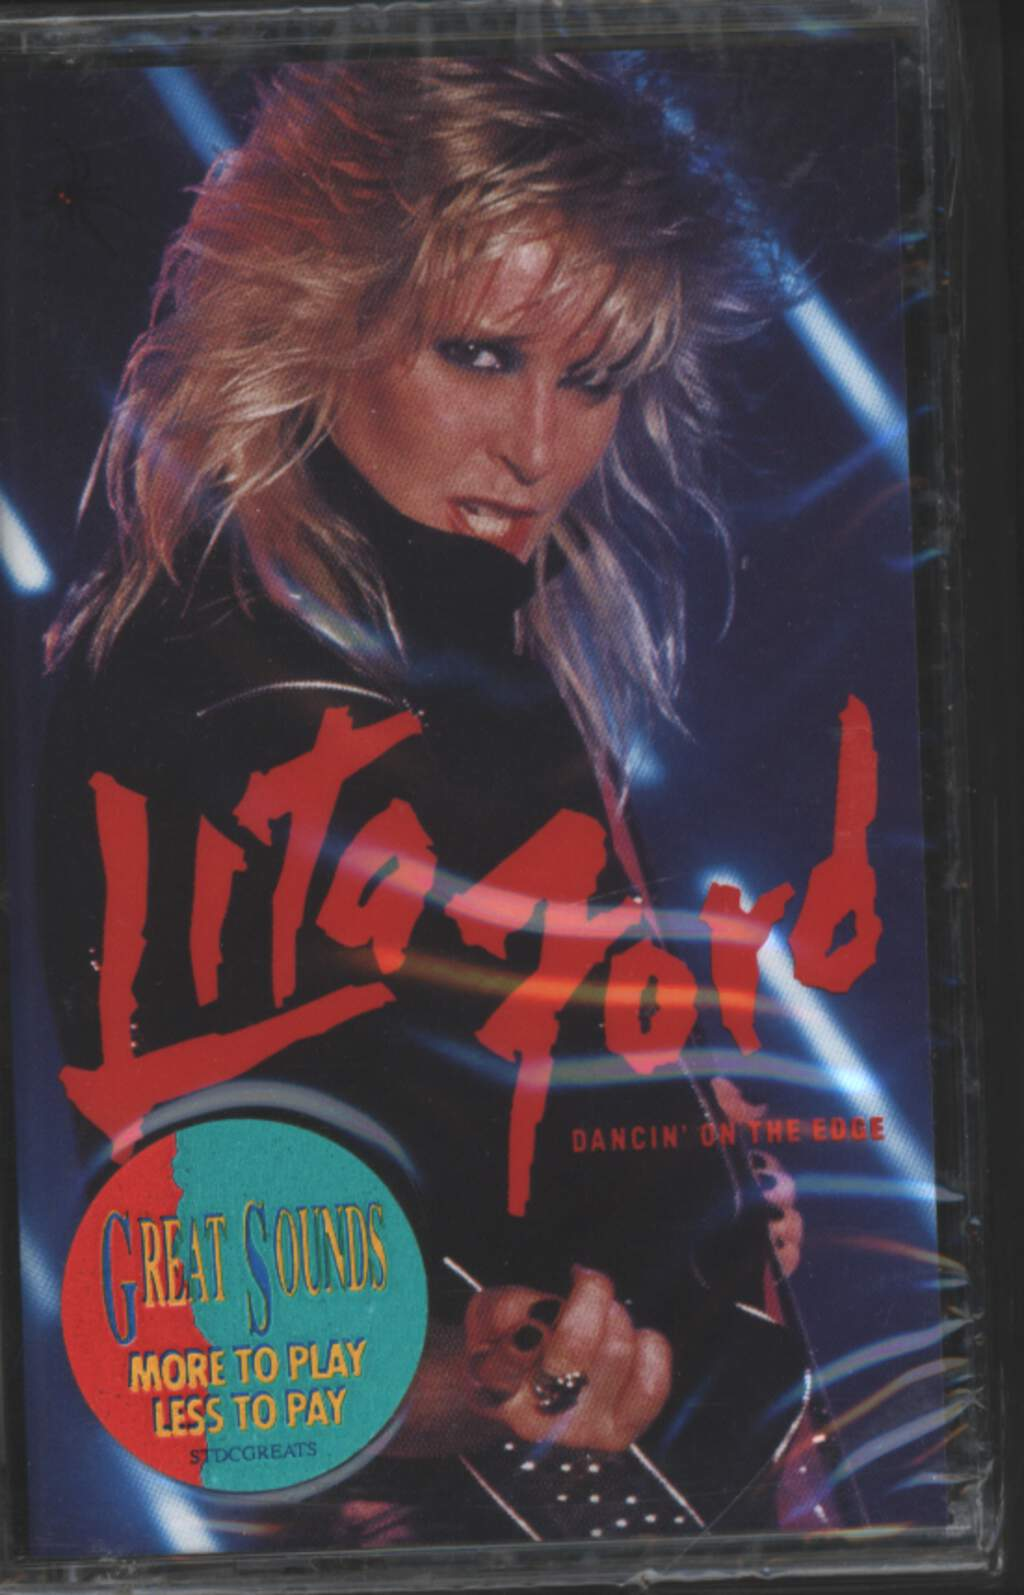 Lita Ford: Dancin' On The Edge, Tape